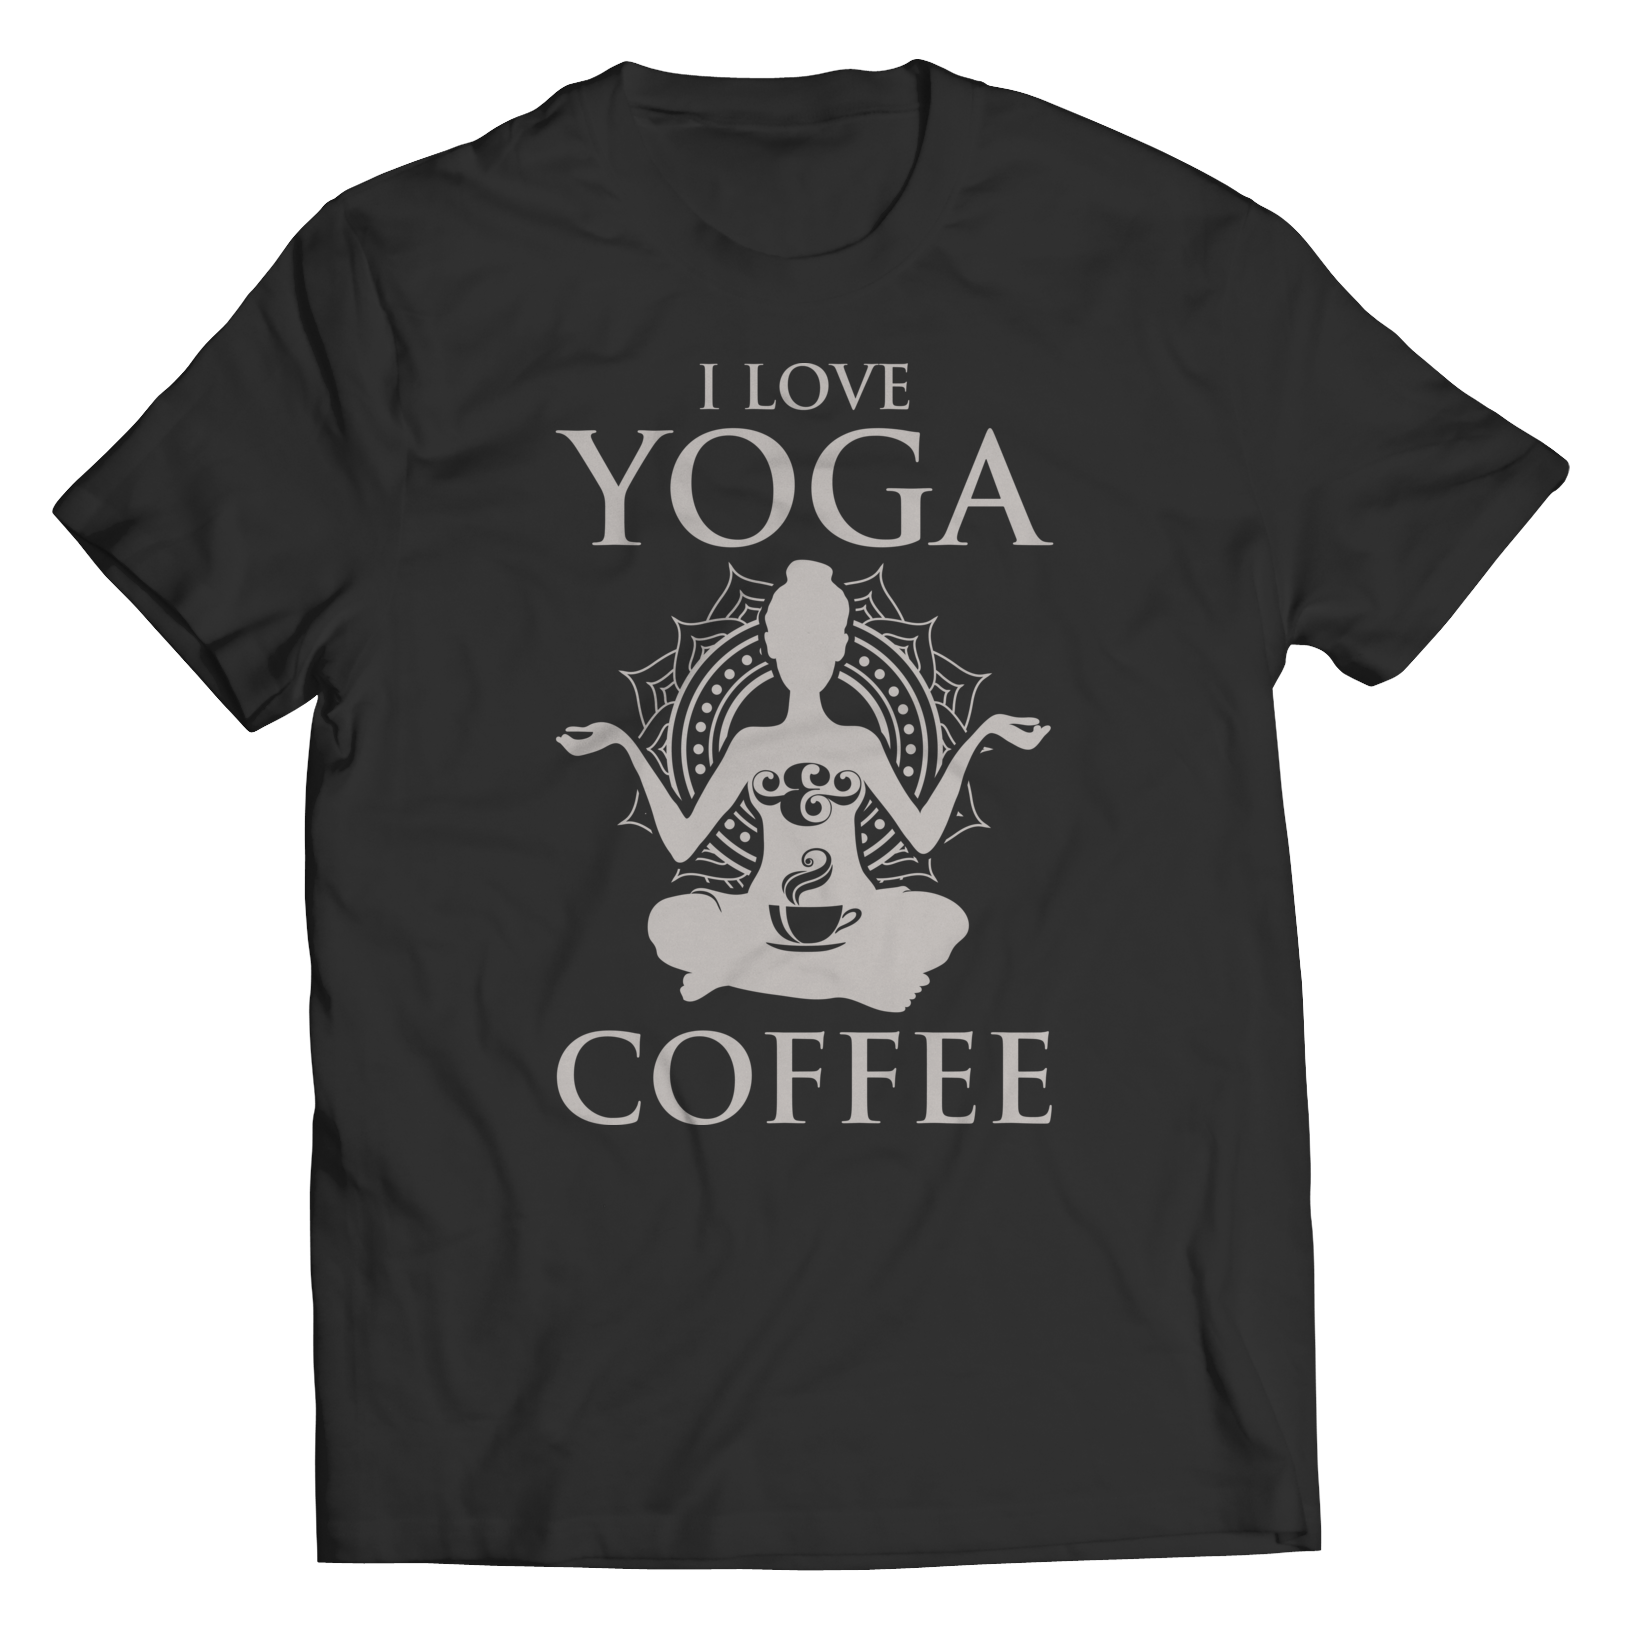 I Love Yoga & Coffee